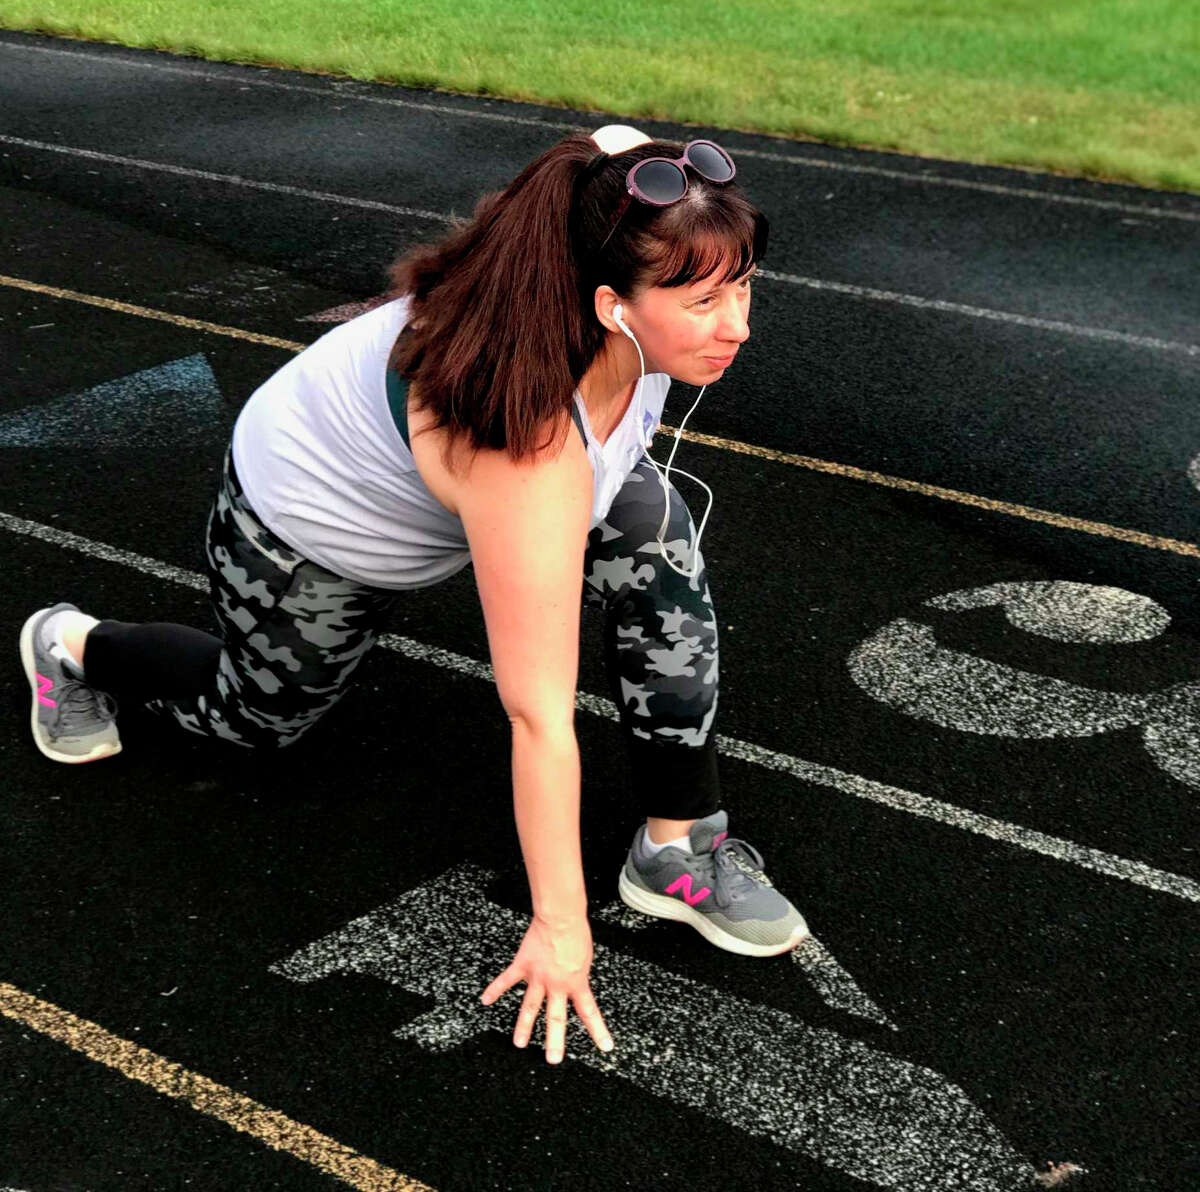 When she isn't working 12-hour shifts, expanding her non-profit, or spending time with her family, Big Rapids resident Leora Bain finds herself lacing her shoes at 7 a.m. in an effort to prepare for her first-ever 5K. According to Bain, this 5K was created to help raise funds and awareness of her non-profit organization, GLIDE.